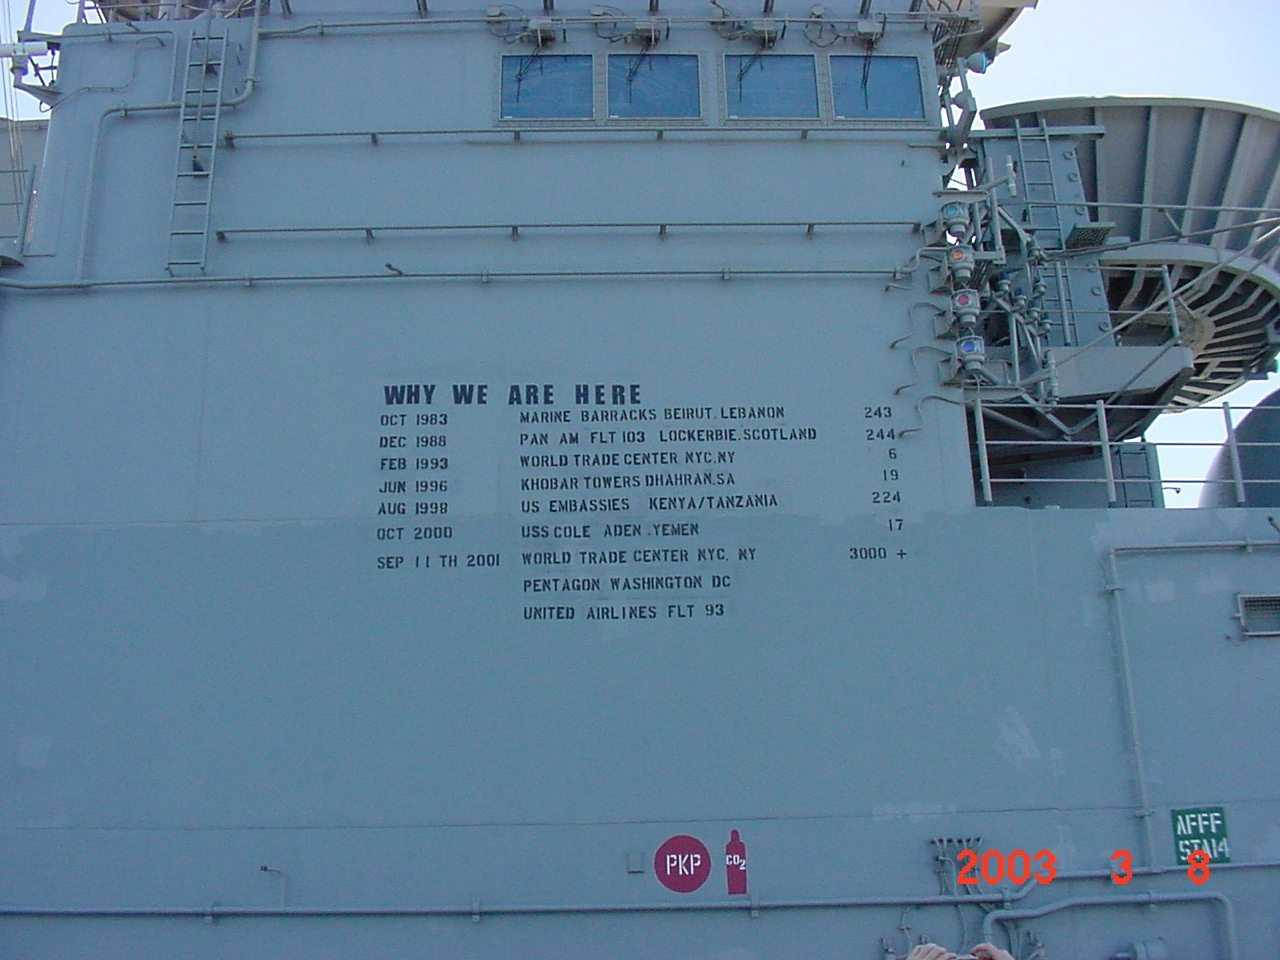 Click image for larger version  Name:whywearehere war ship.jpg Views:144 Size:69.0 KB ID:6812